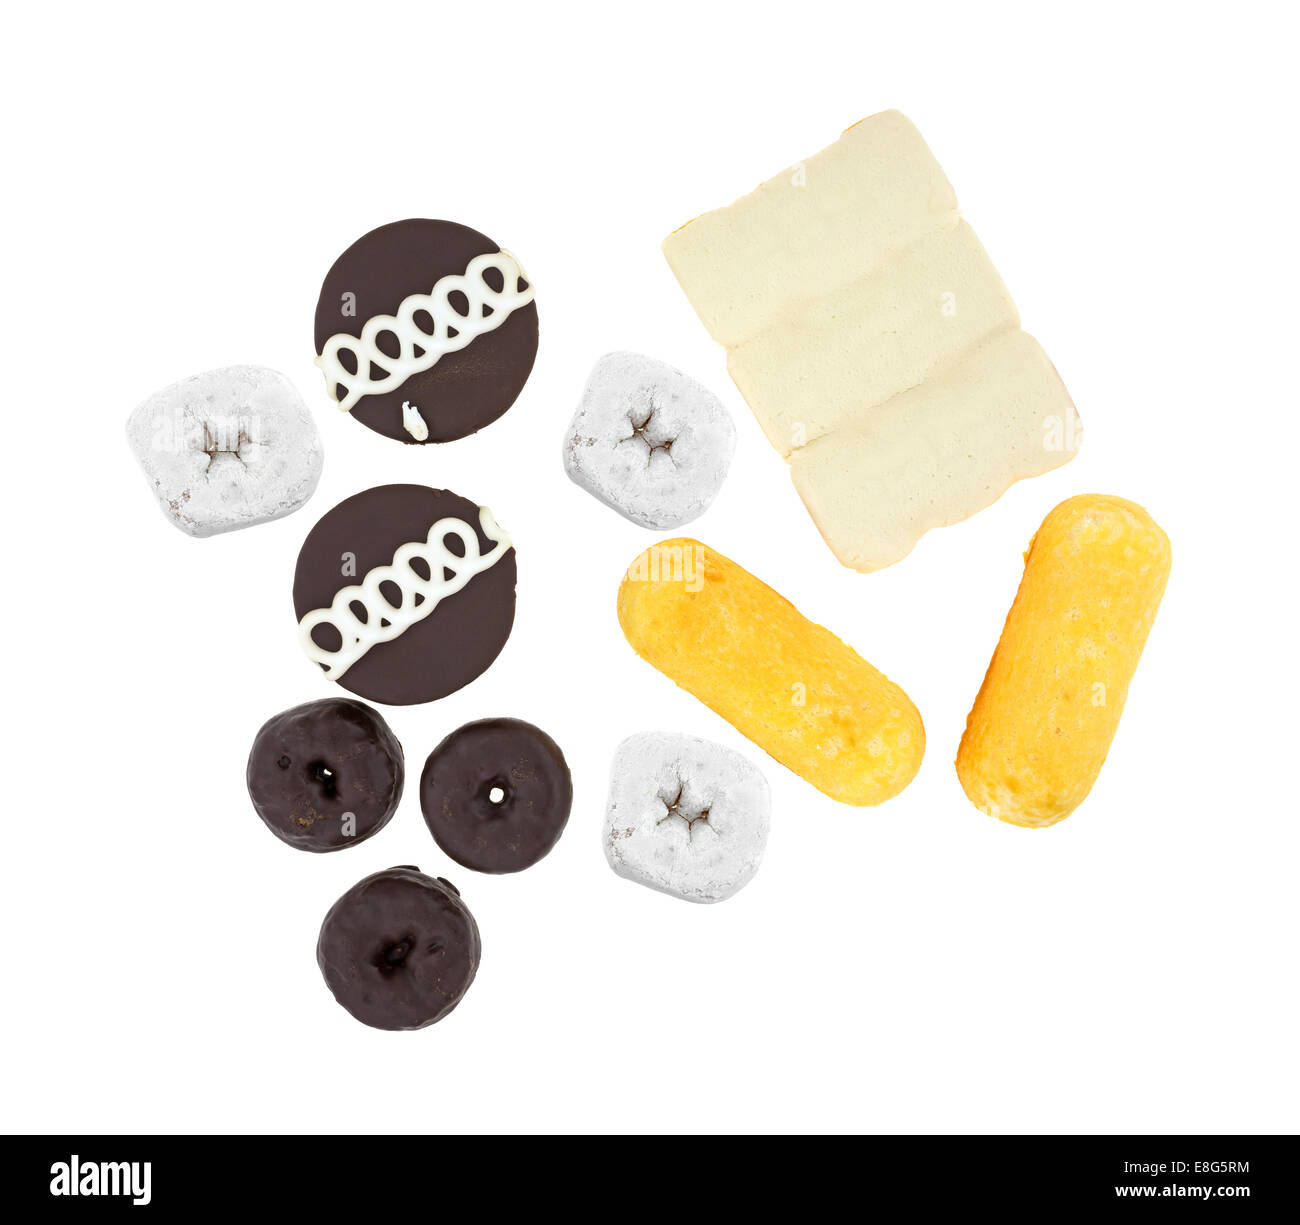 Several varieties of junk food cakes and donuts on a white background. - Stock Image